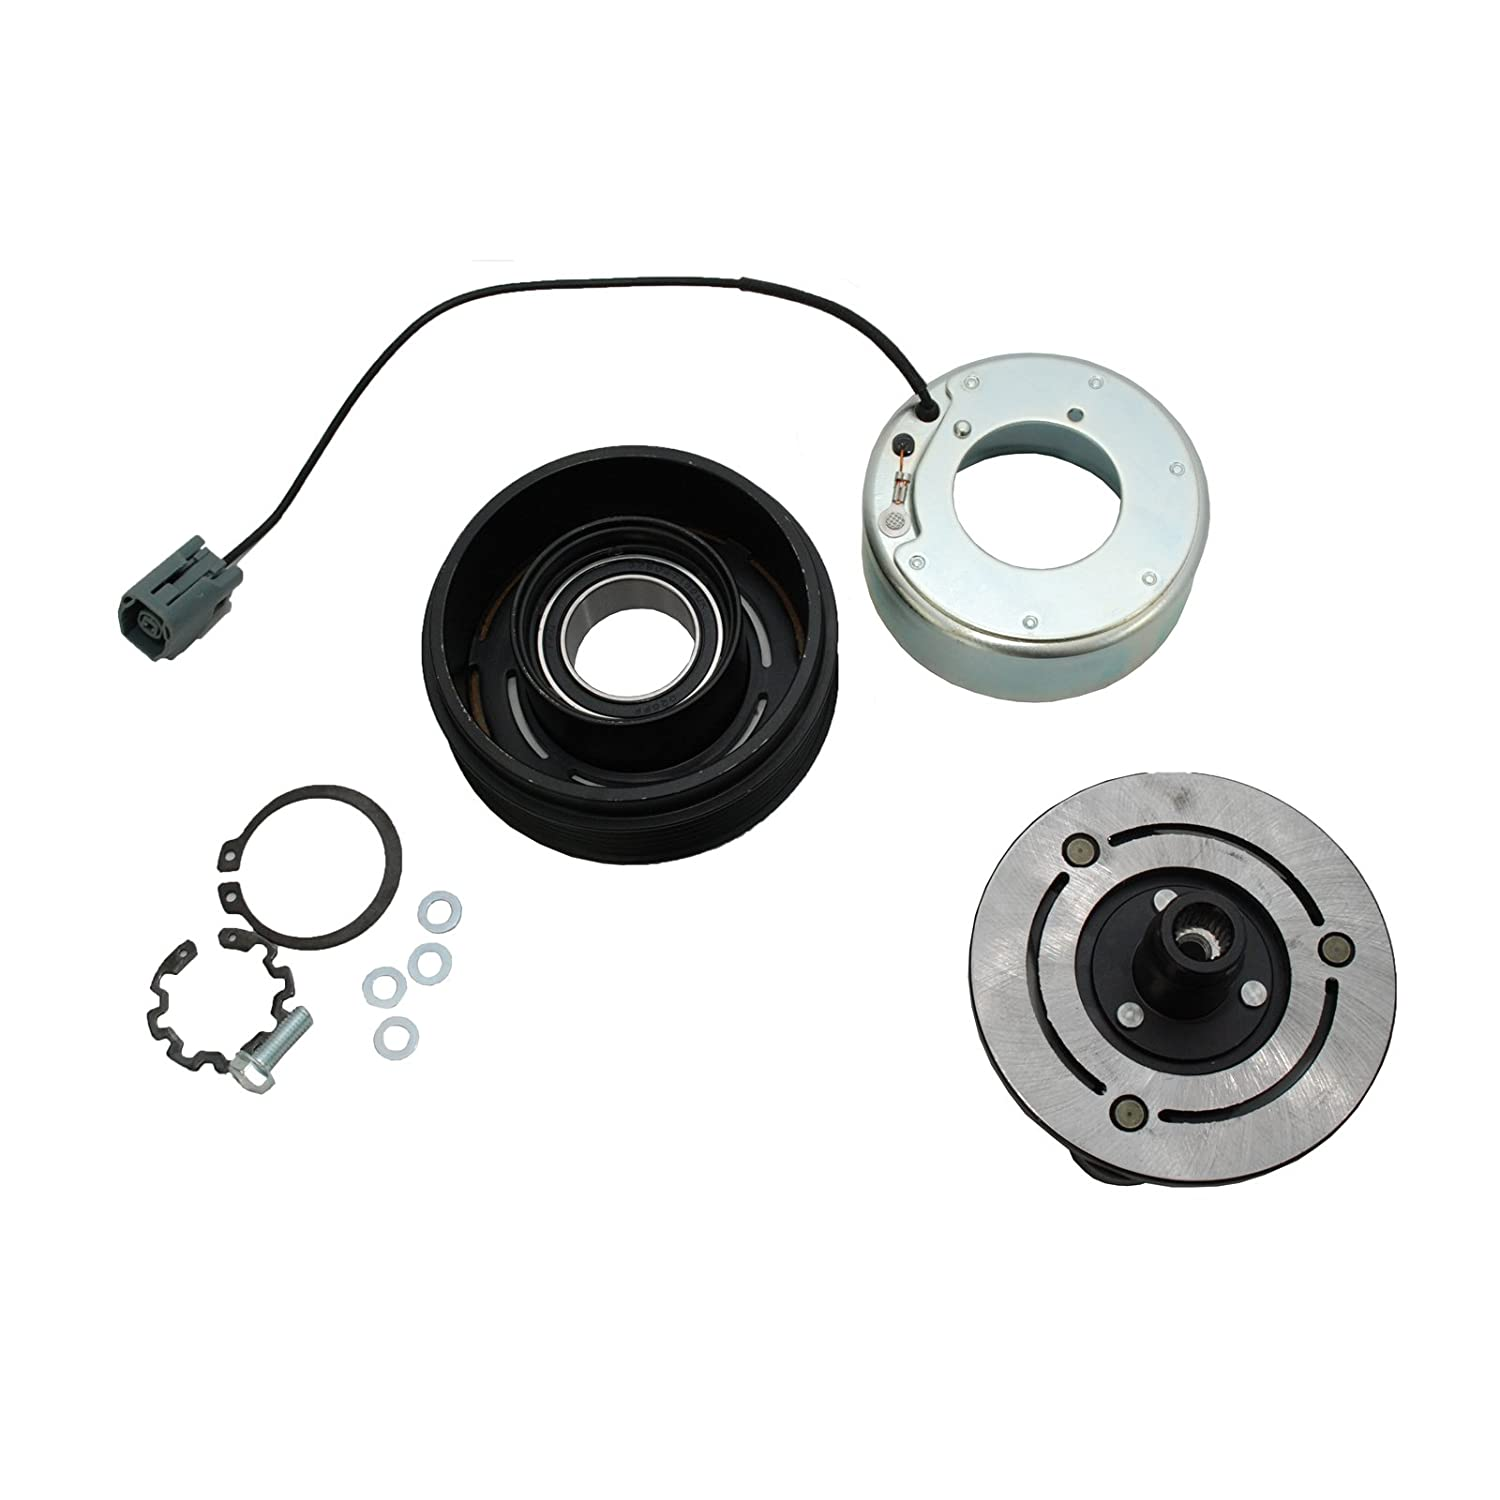 HexAutoparts A/C AC Compressor Clutch Repair Kit for 2007-2009 Mazda 3/2006 Mazda 5/2007-2009 CX-7